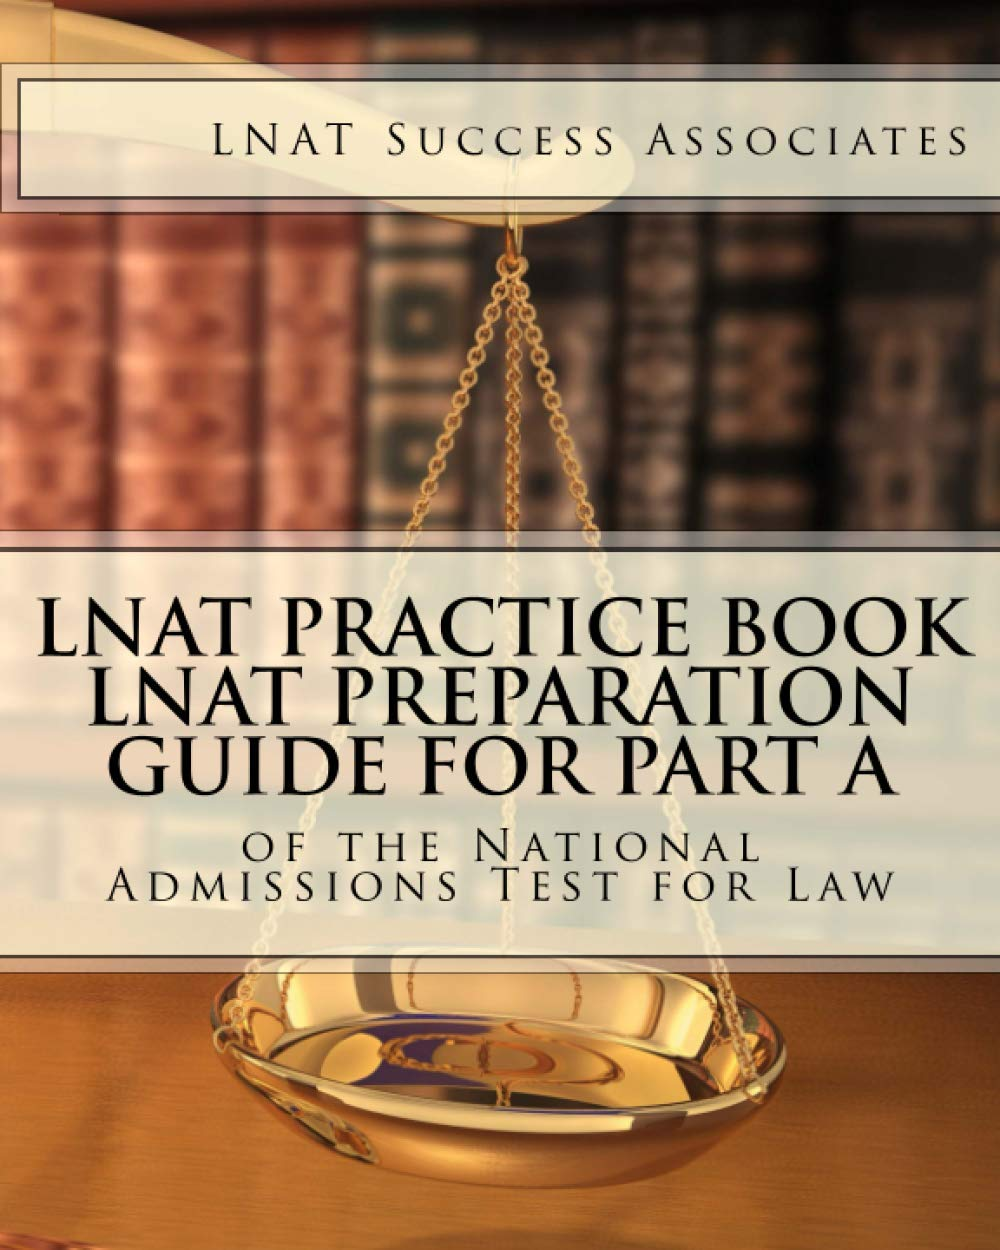 Lnat Practice Book Lnat Preparation Guide For Part A Of The National Admissions Test For Law Lnat Test Prep Study Guide Series Lnat Success Associates 9781949282276 Amazon Com Books